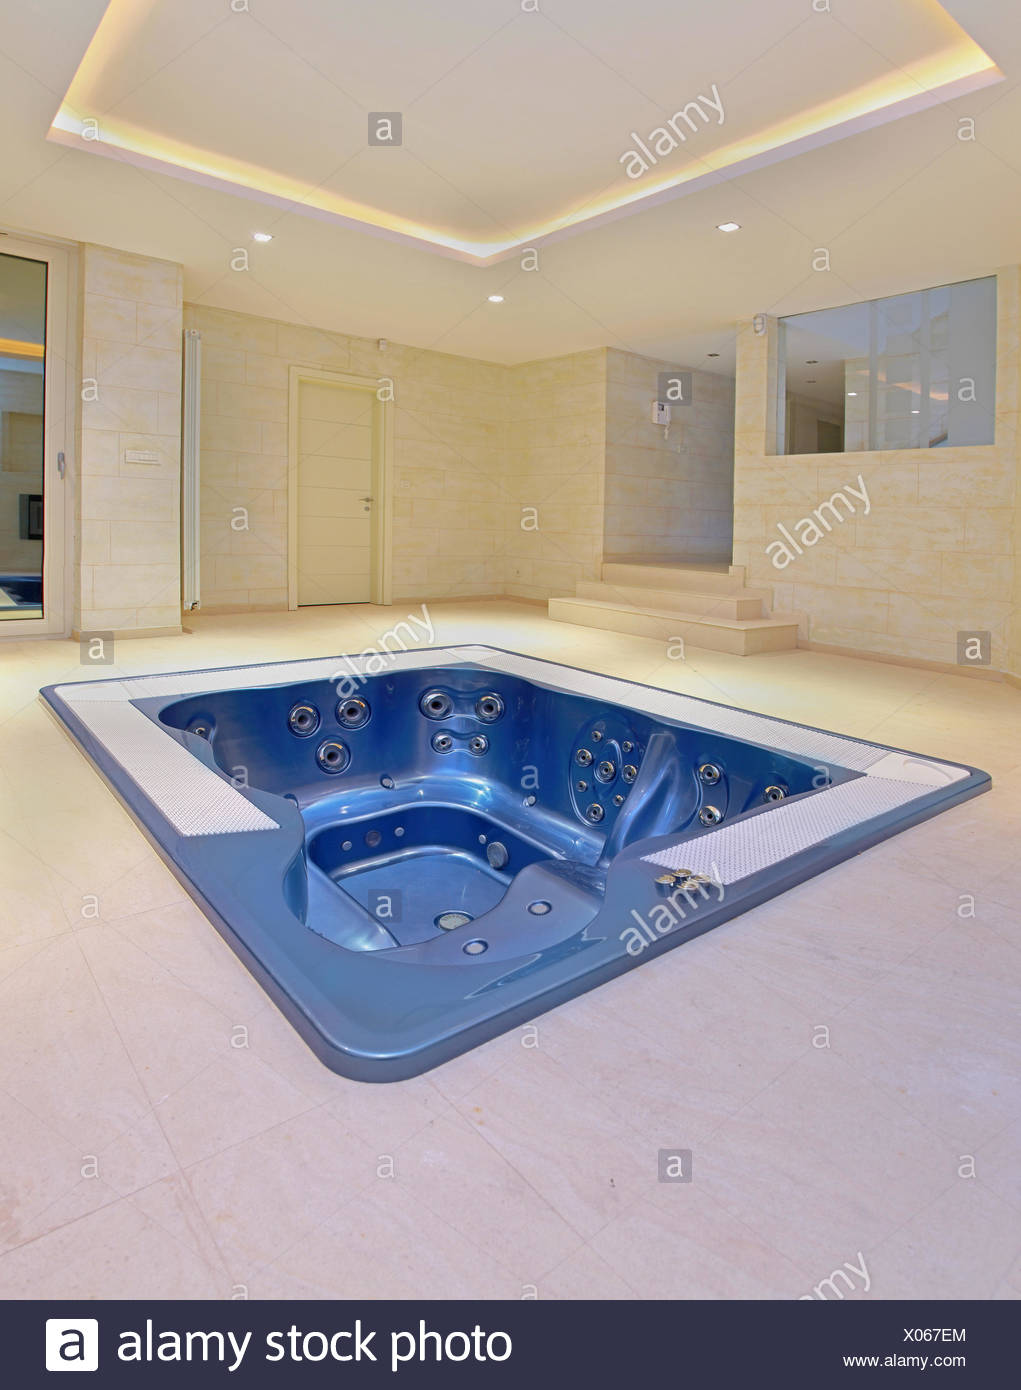 Indoor Hot Tub Stock Photos & Indoor Hot Tub Stock Images - Alamy